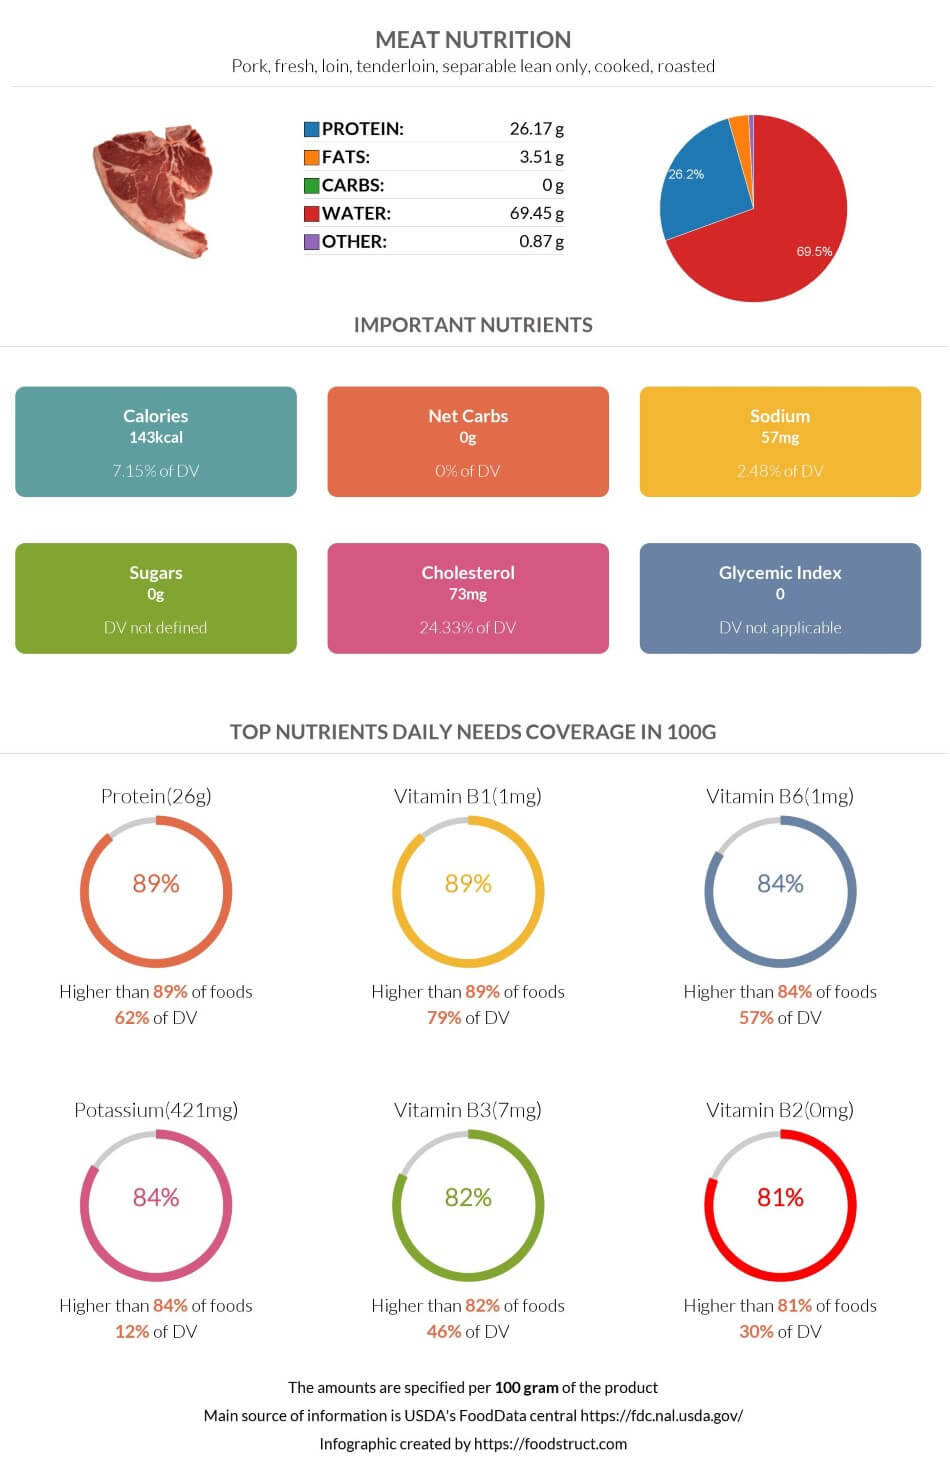 Meat nutrition infographic